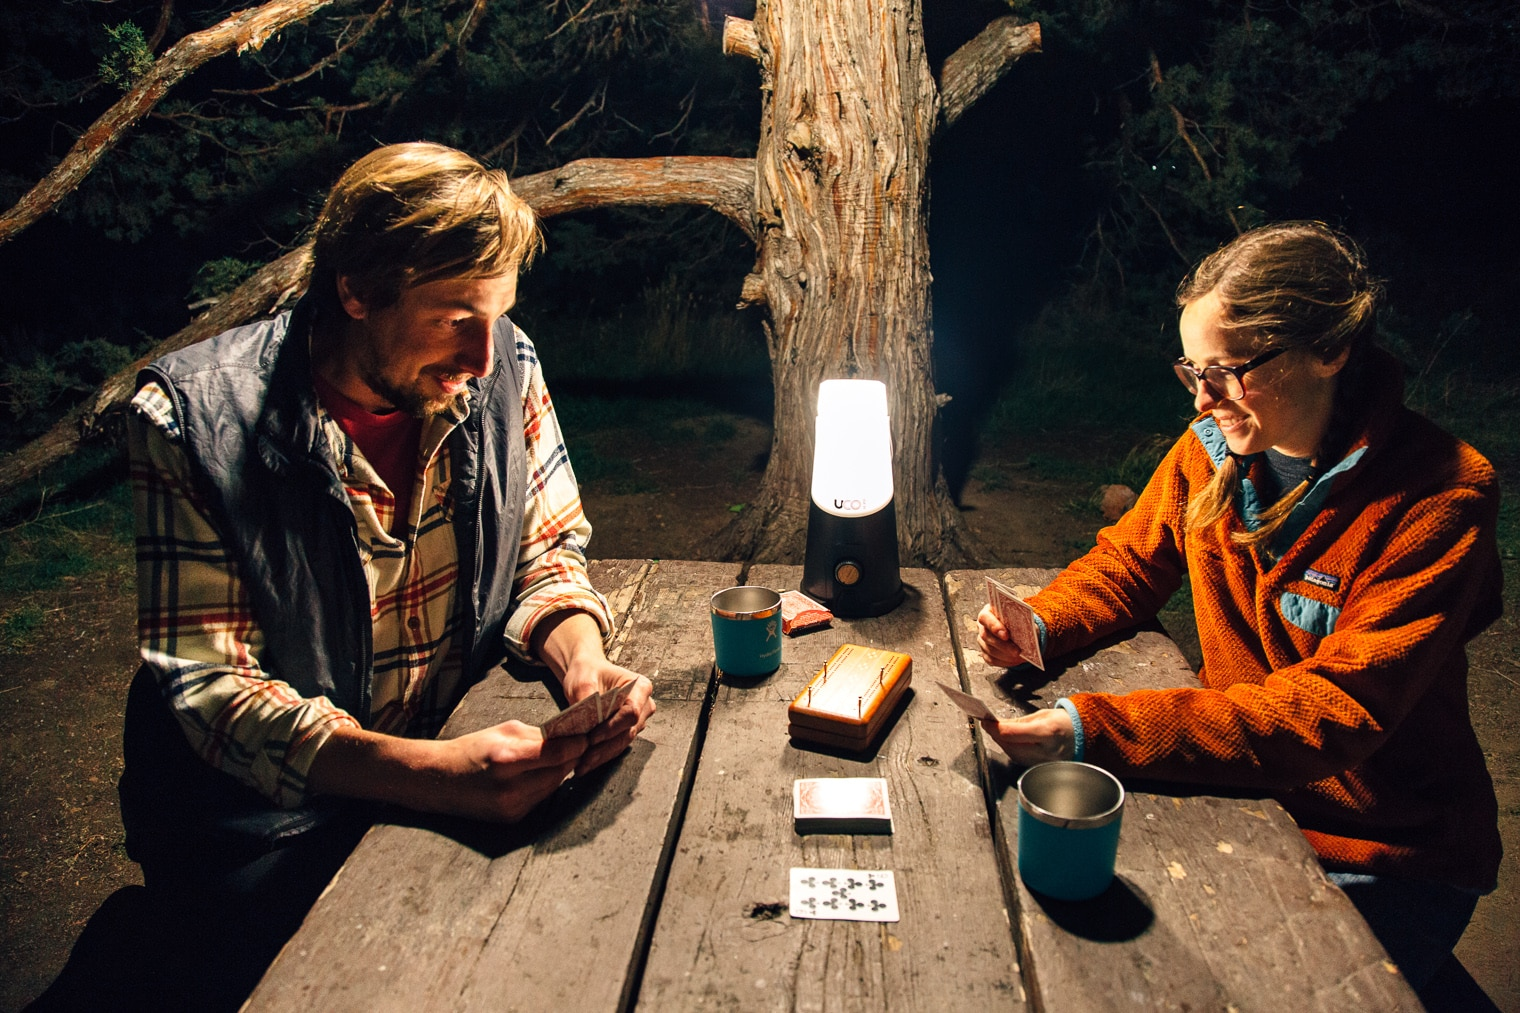 Megan and Michael playing cards at a table lit by a lantern